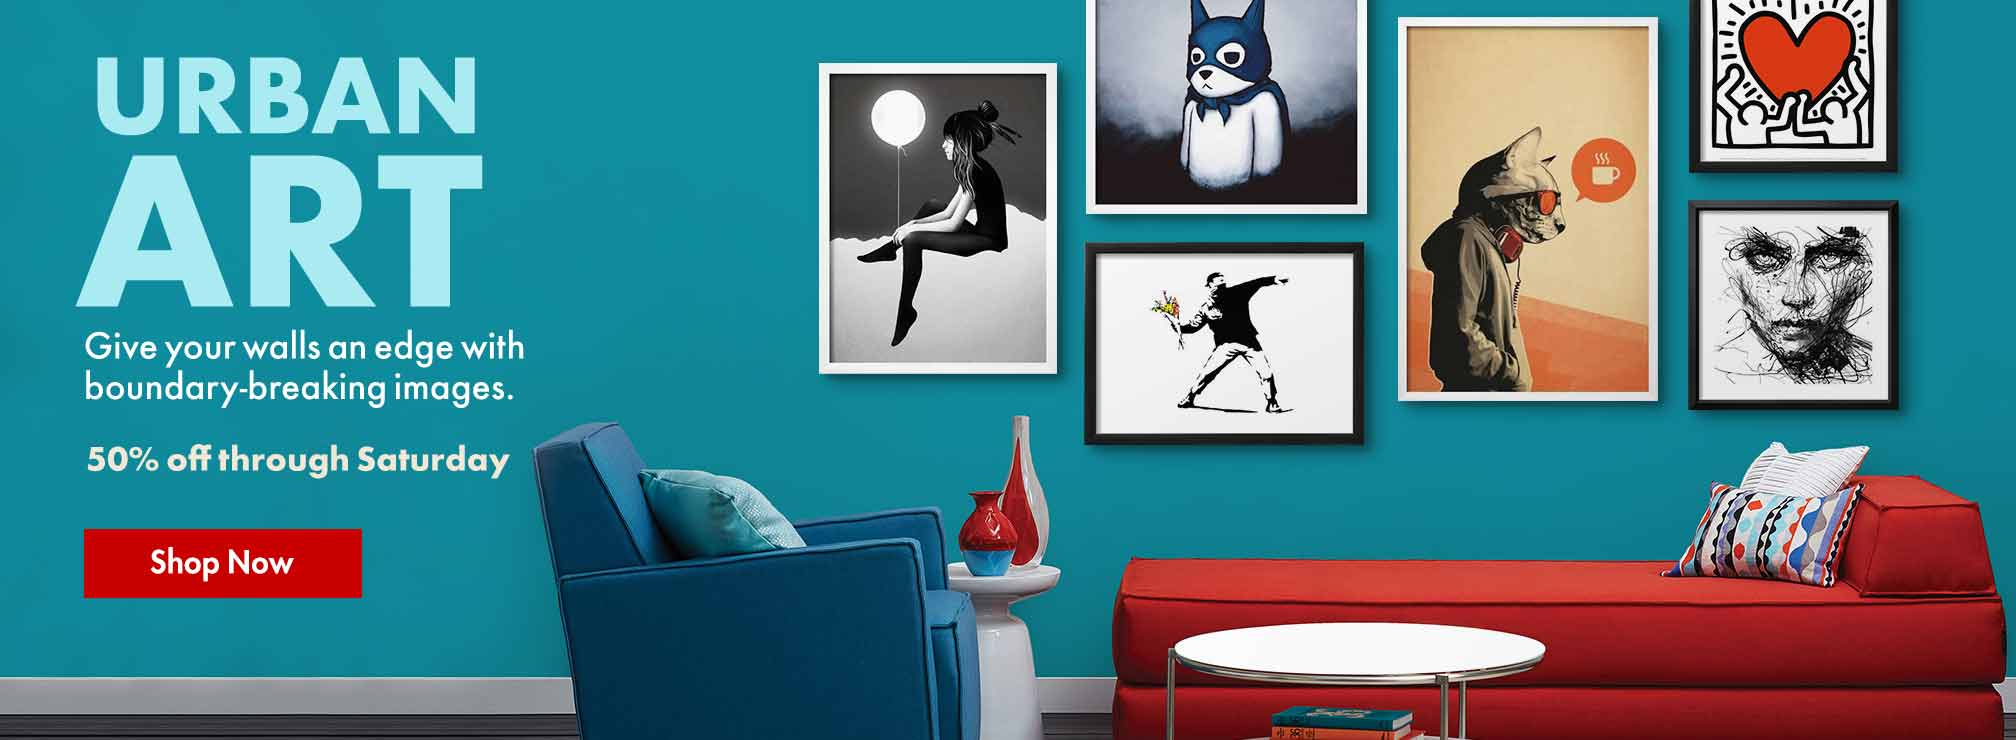 AllPosters com - The World's Largest Poster and Print Store!